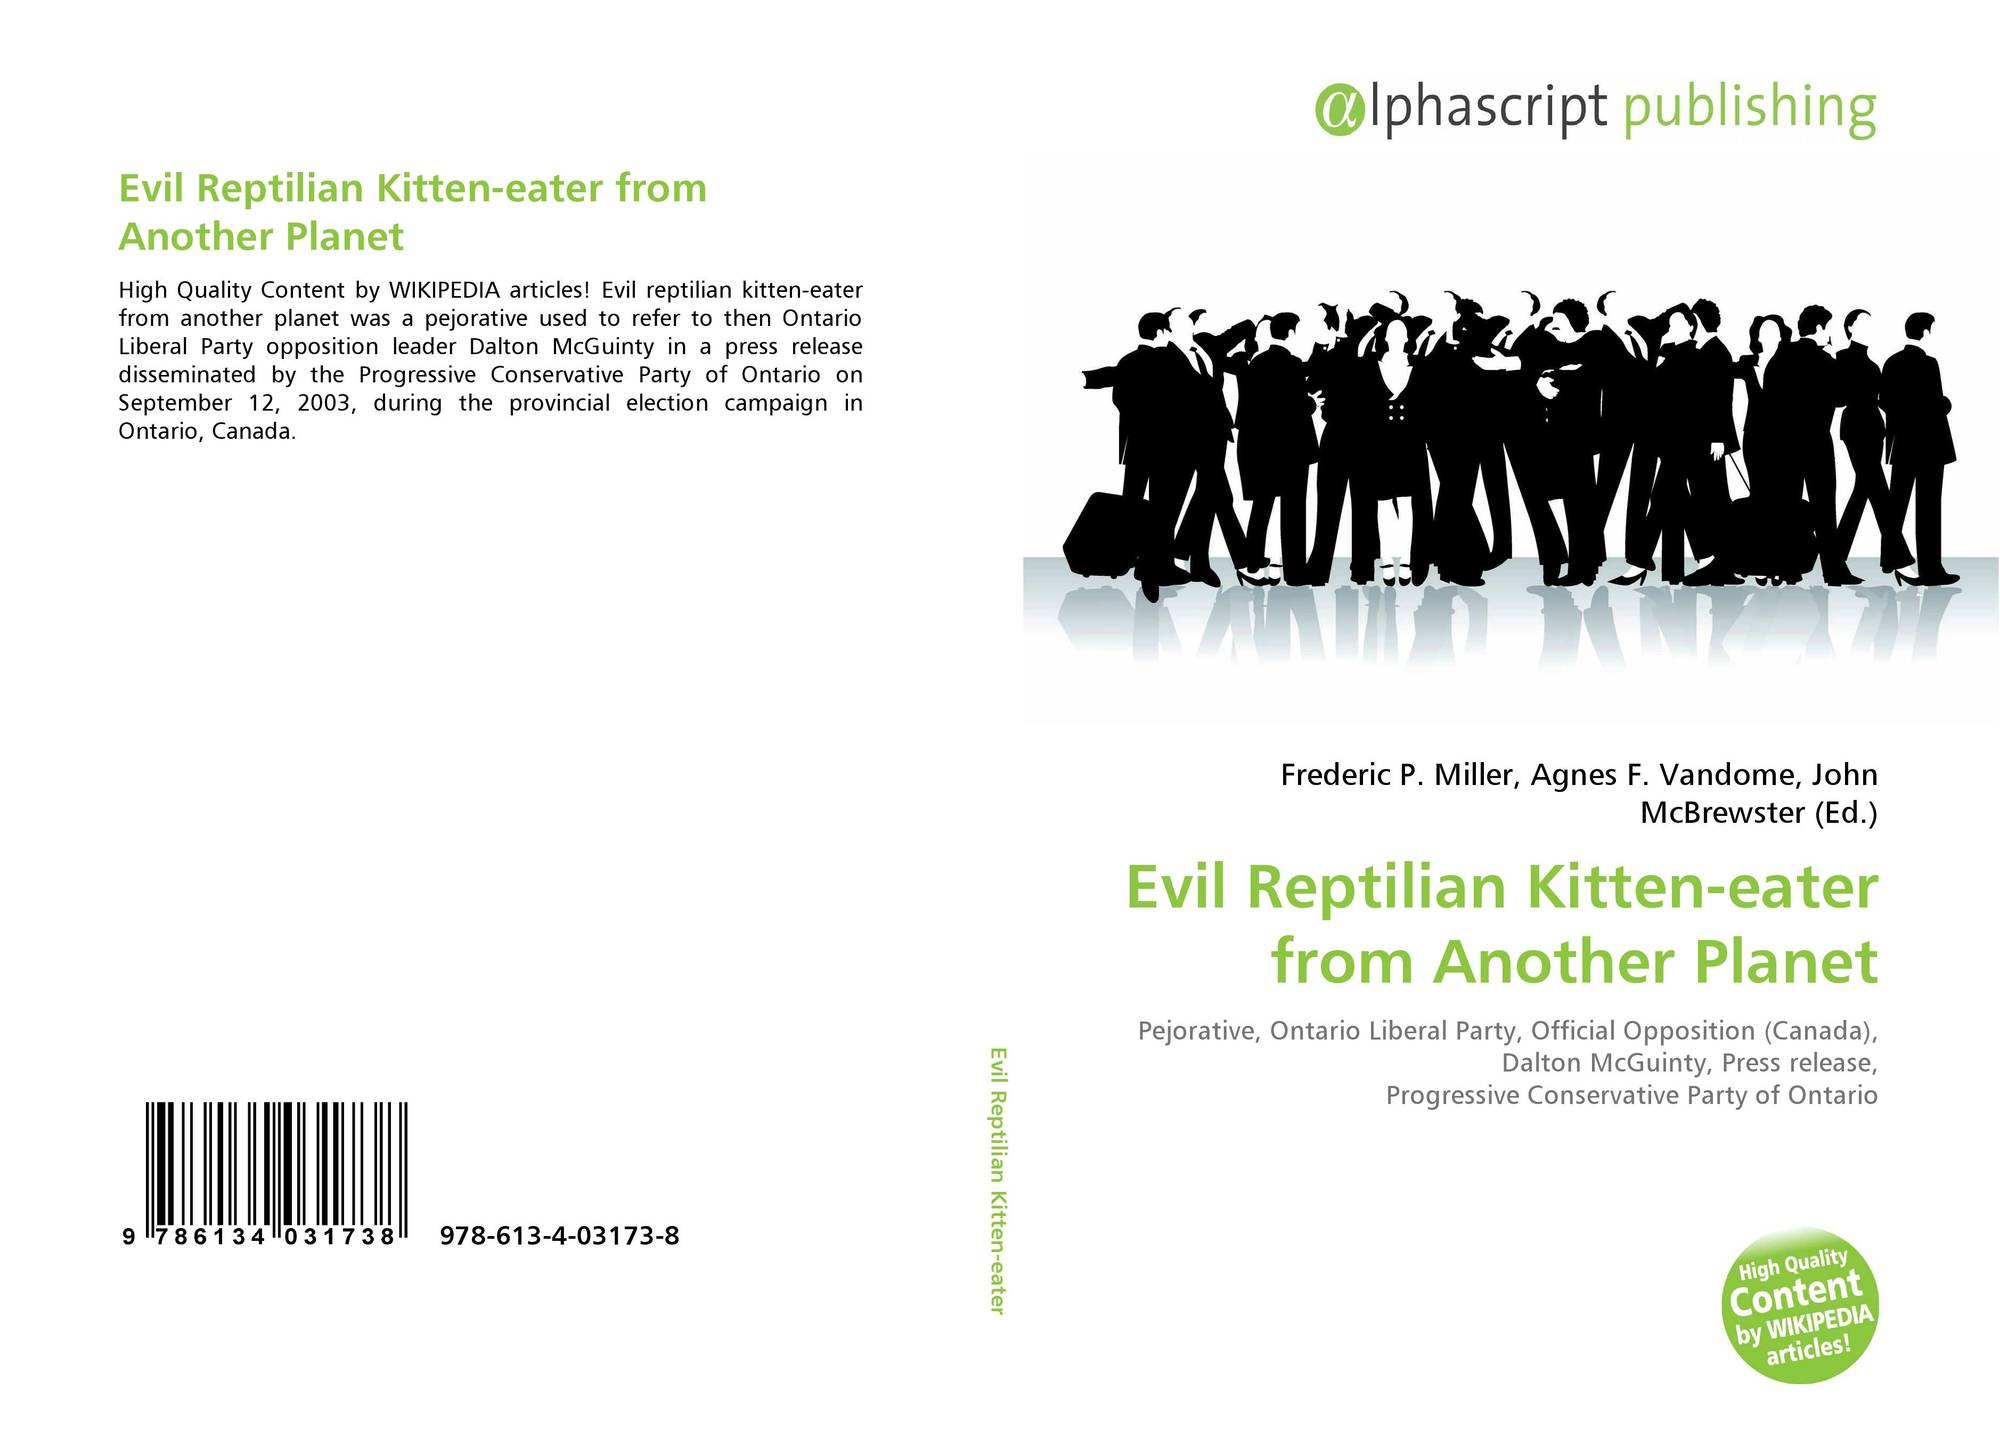 evil reptilian kitten-eater from another planet